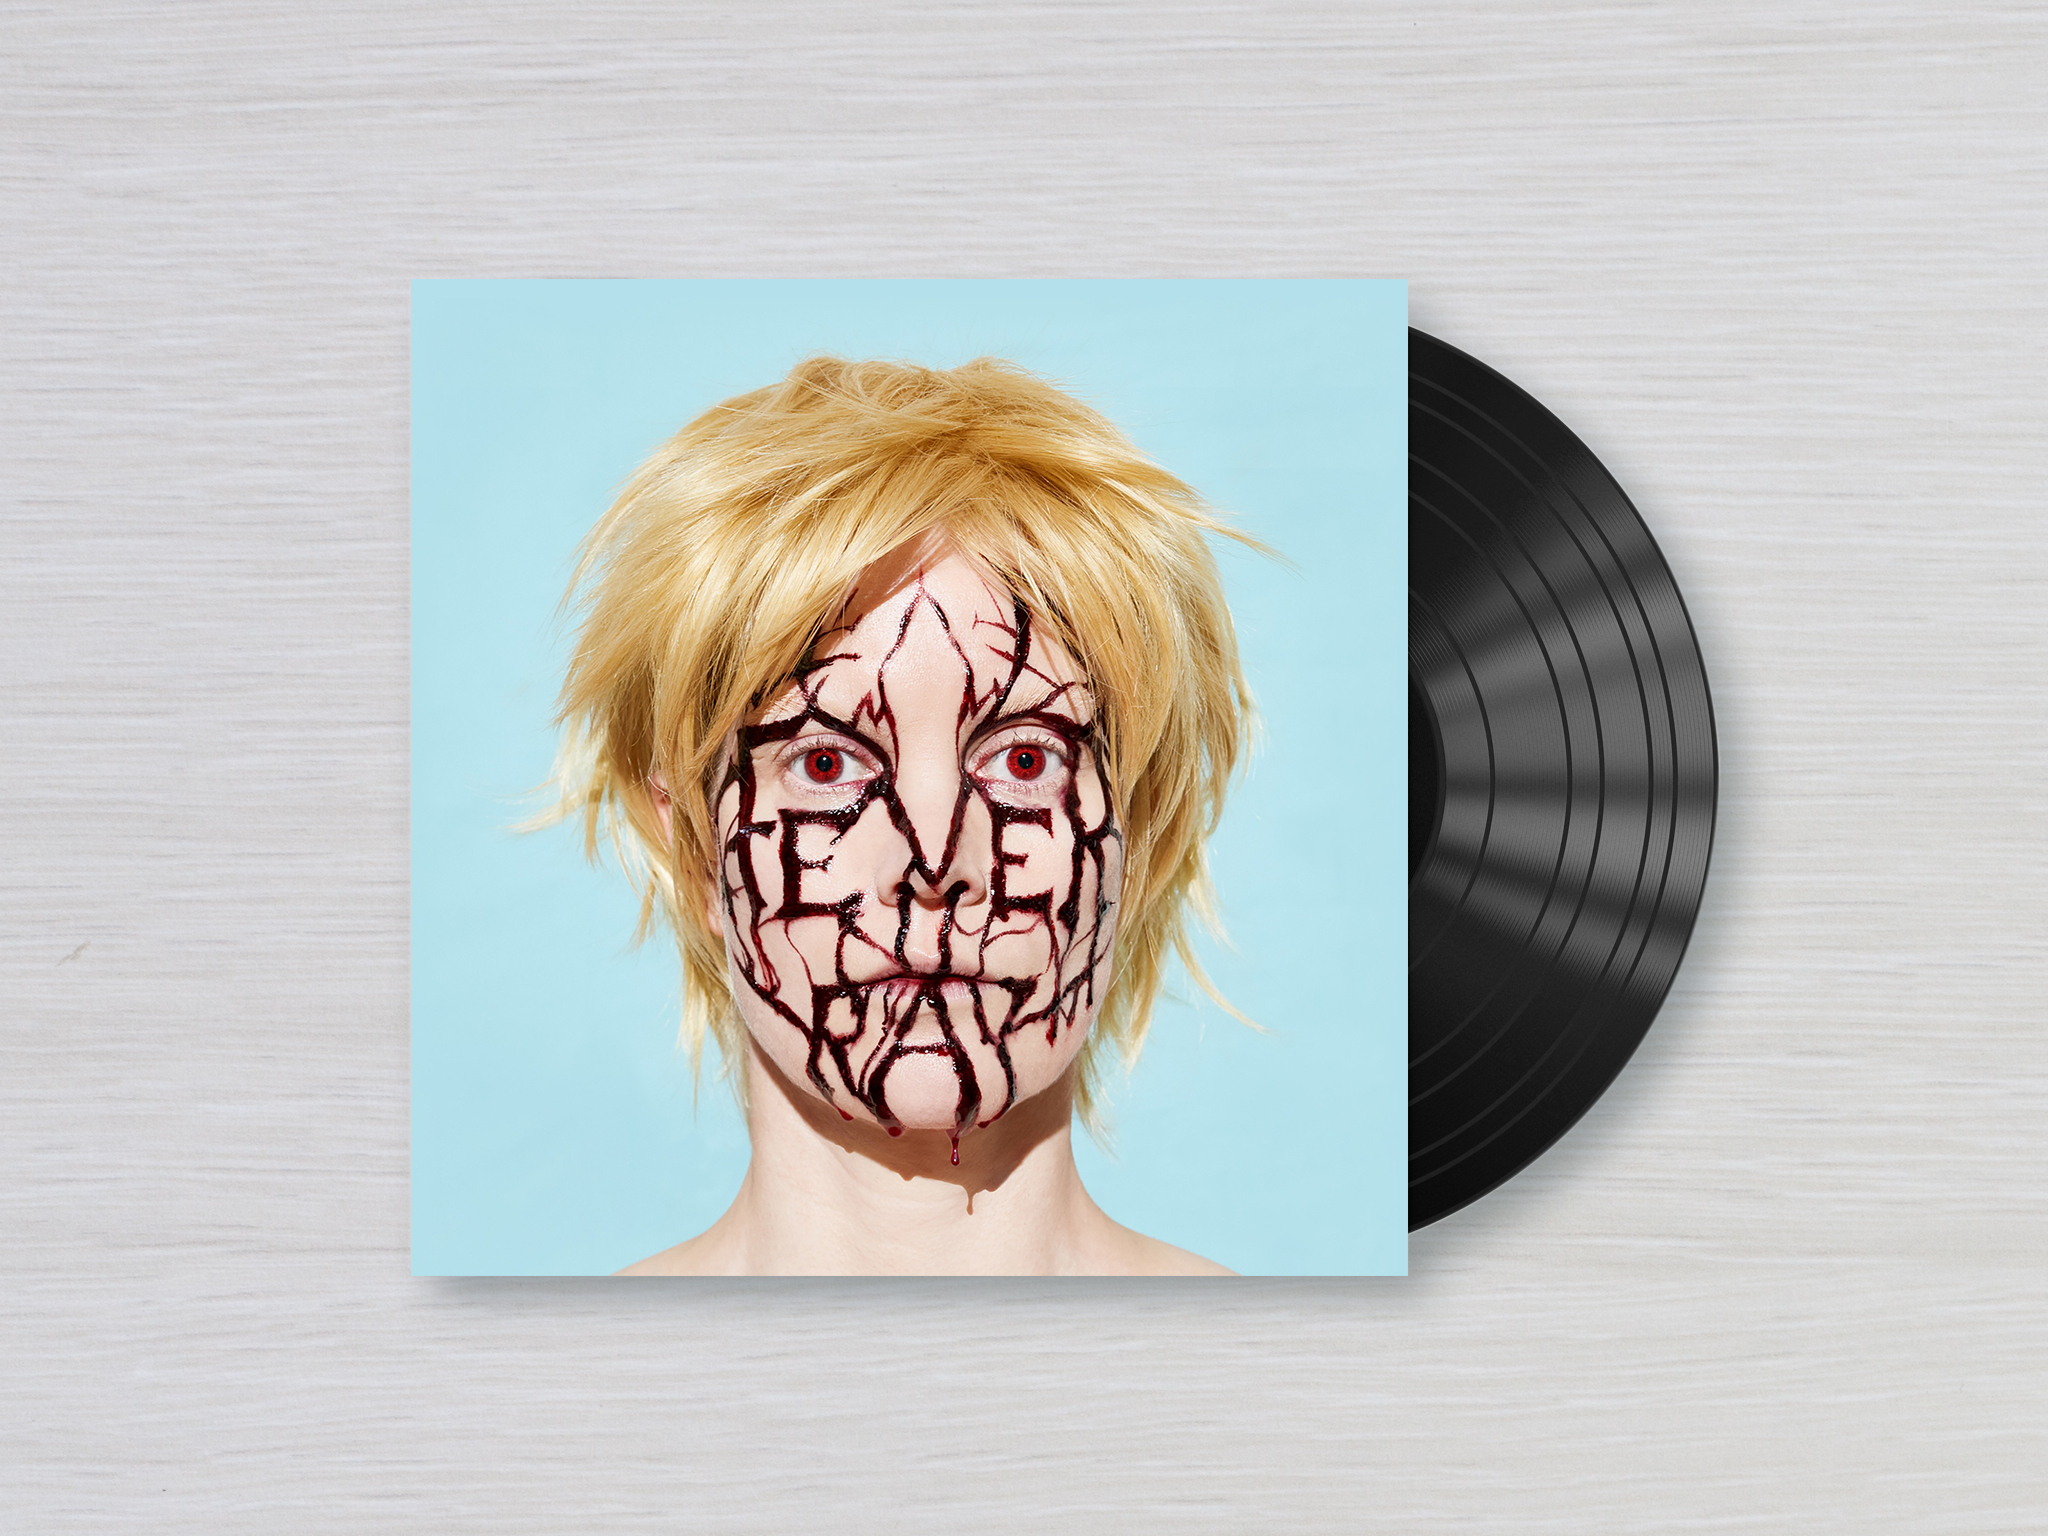 Fever Ray regresó con su segundo disco, Plunge